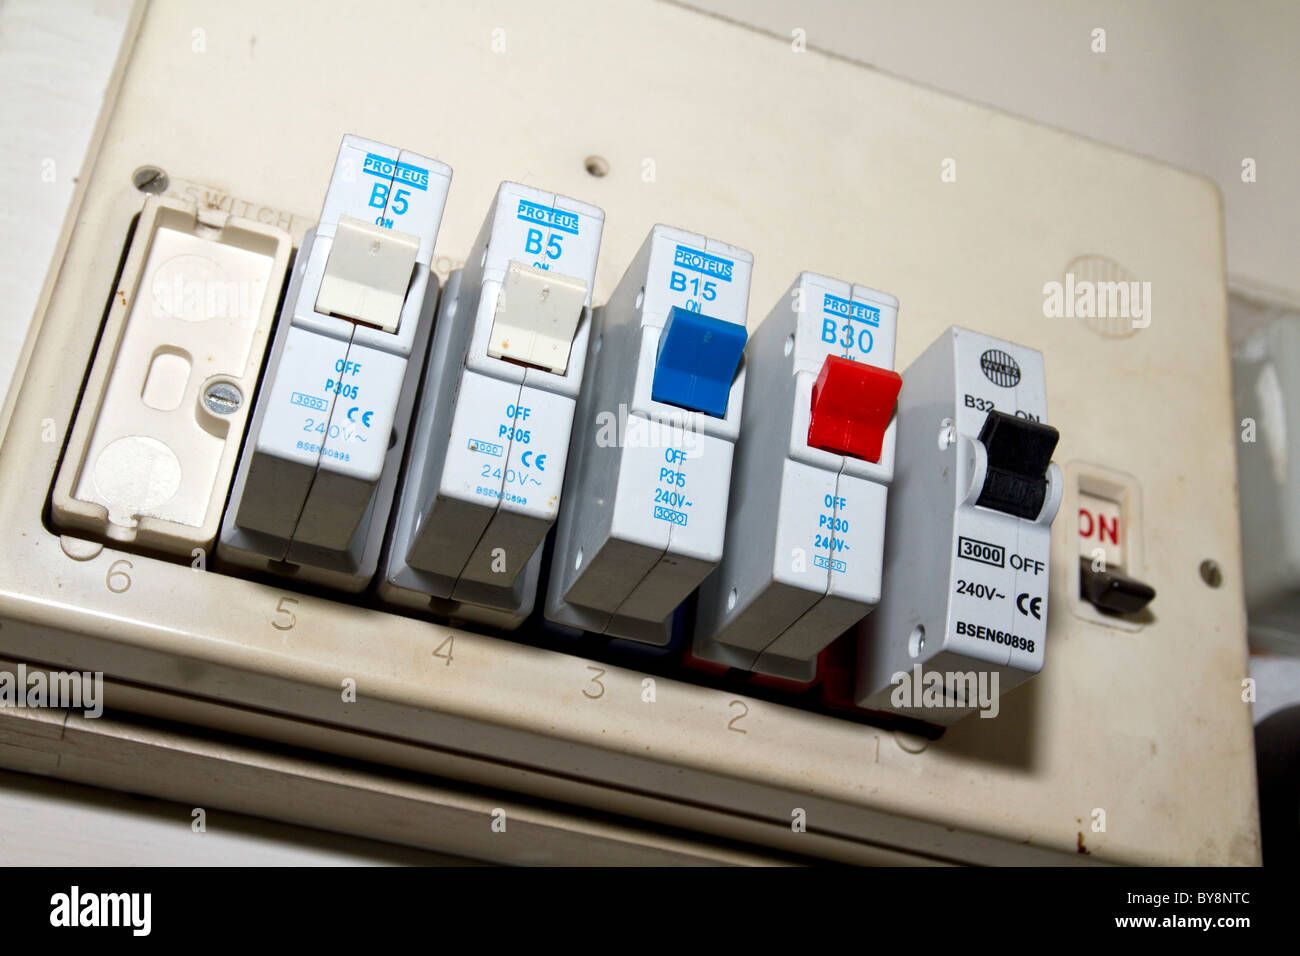 uk old electric fuse box in a london house BY8NTC uk old electric fuse box in a london house stock photo, royalty fuse box fuses at bakdesigns.co